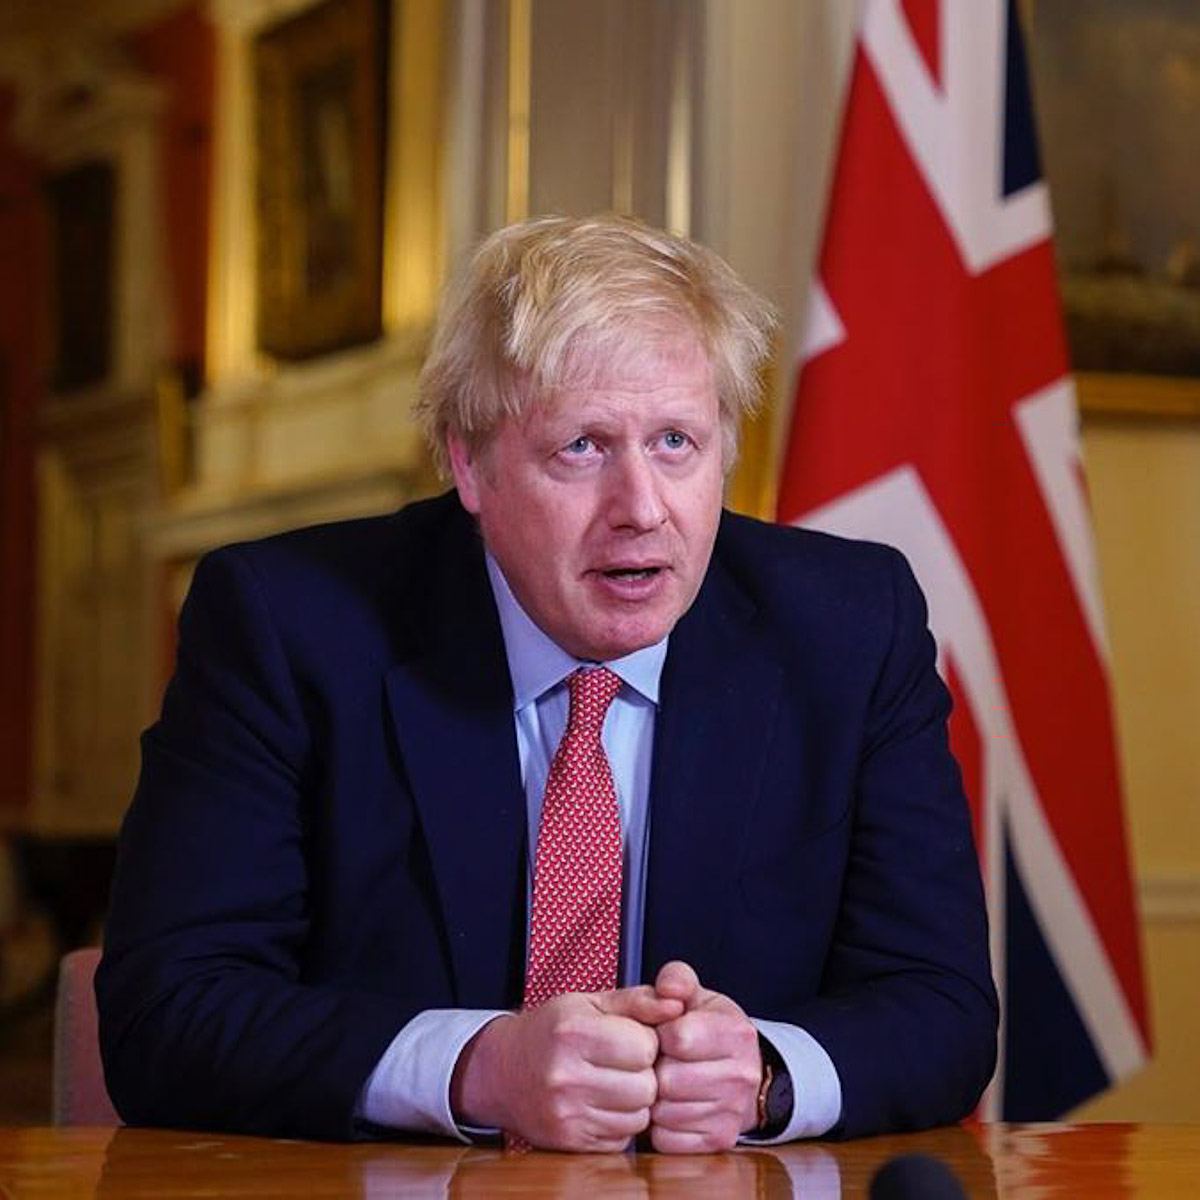 boris-johnson-uk-prime-minister-hair-loss-grooming-hairstyle-man-for-himself